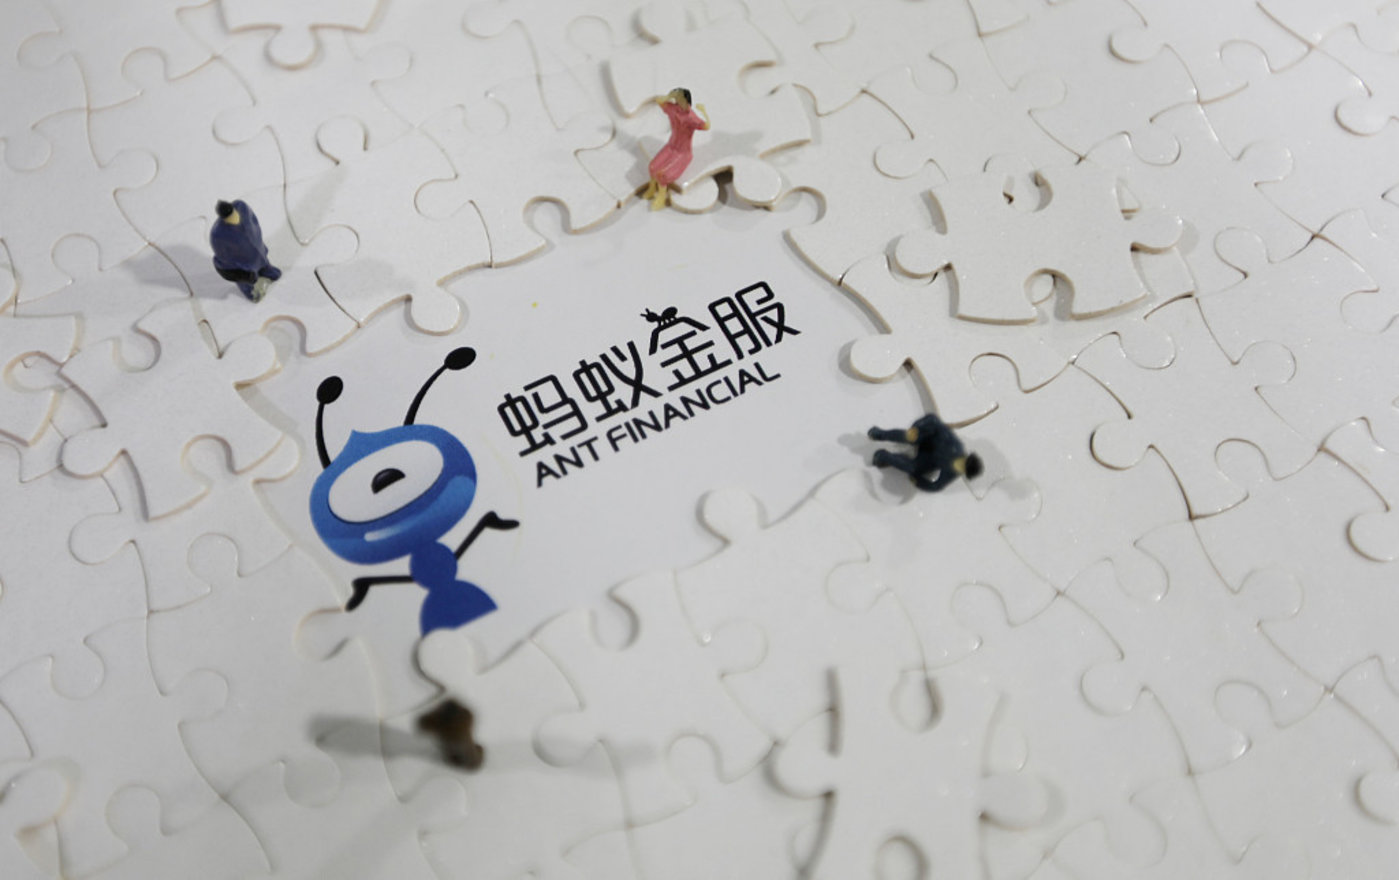 The 'giant ant' Ant Financial